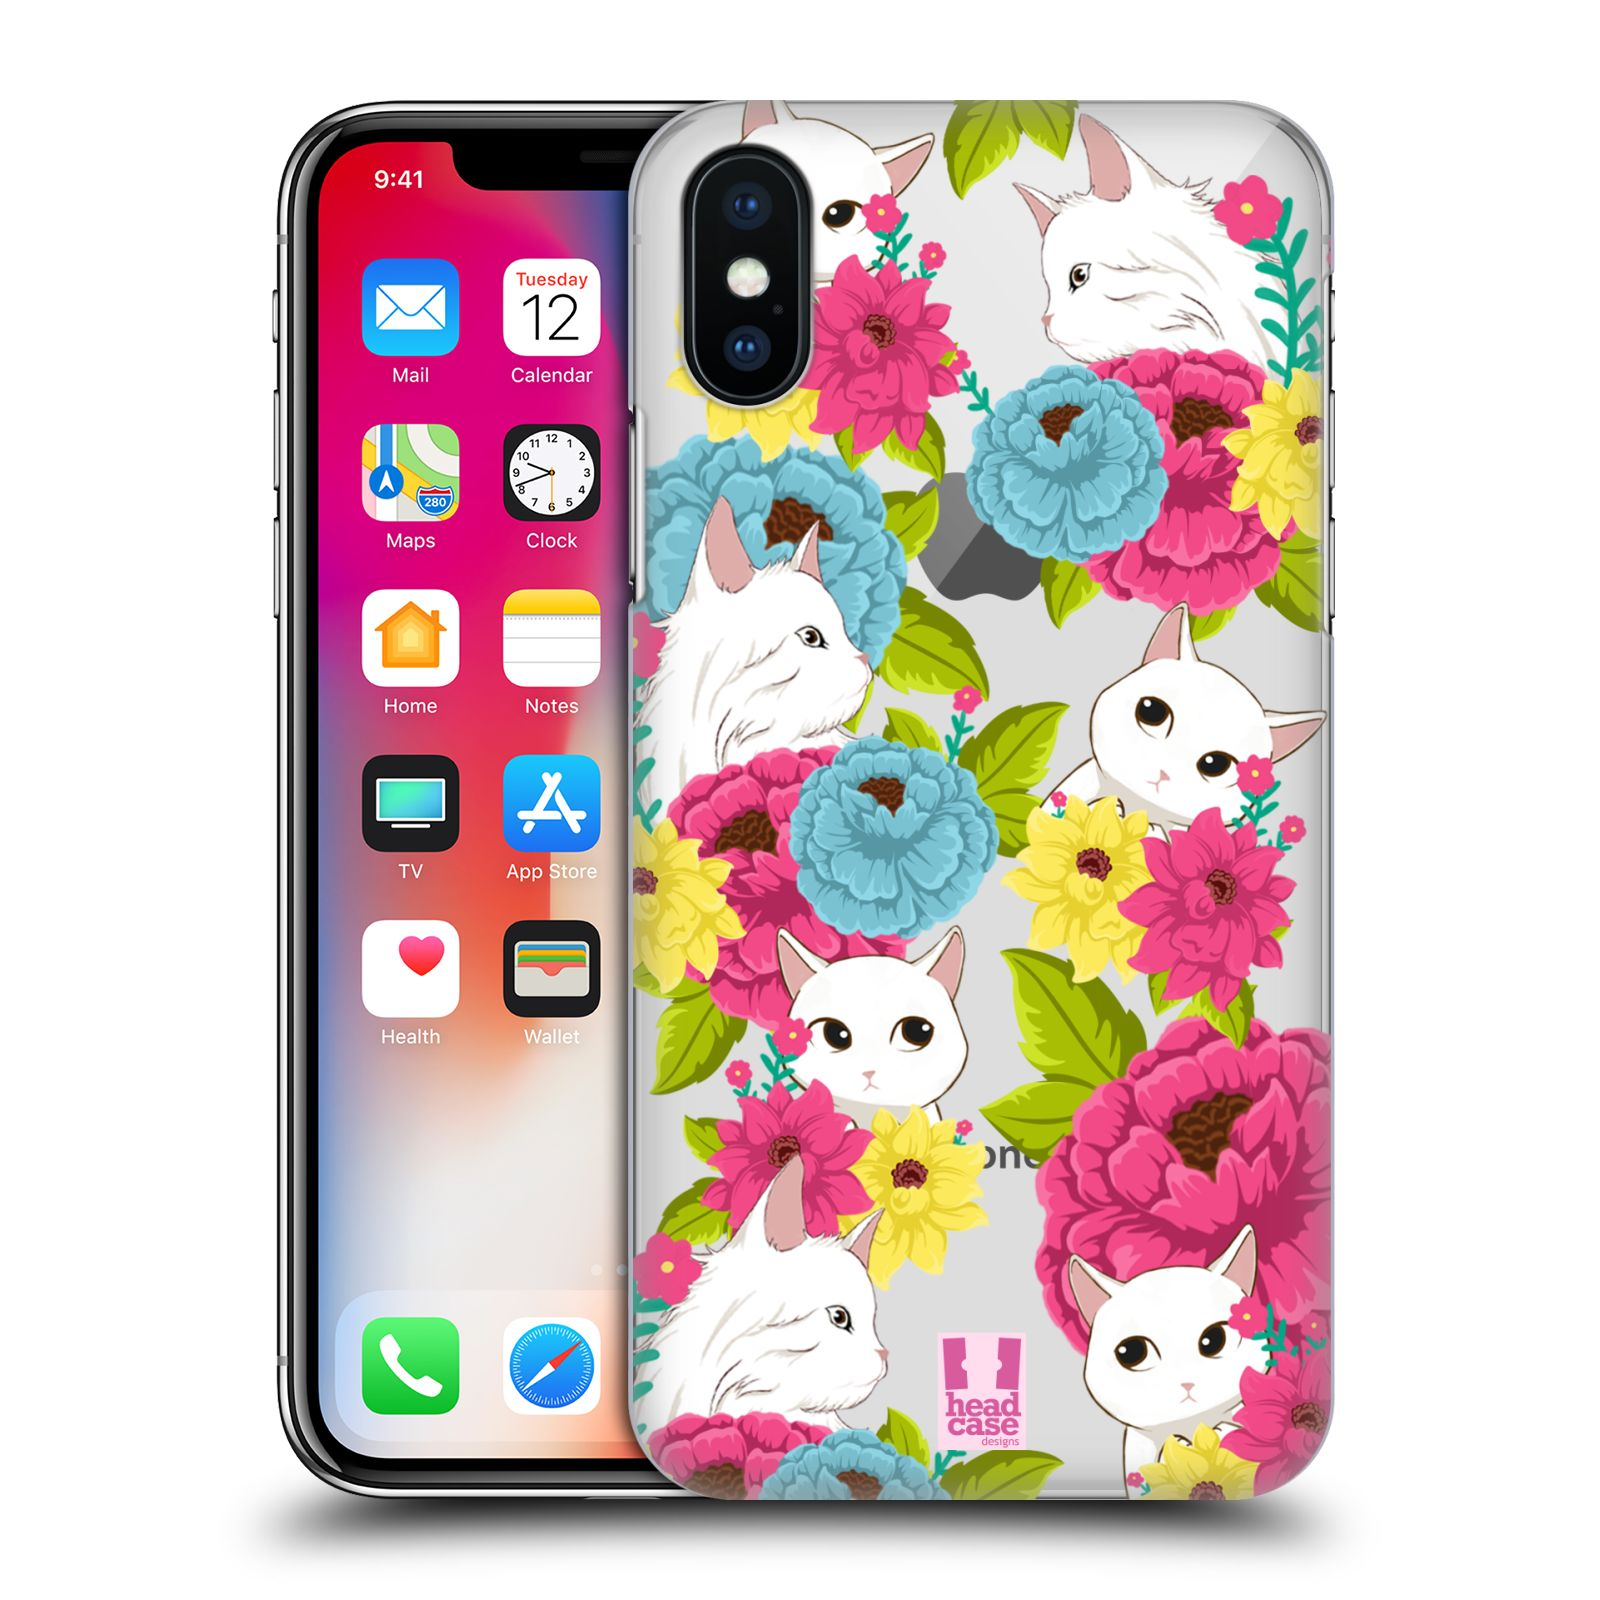 HEAD-CASE-DESIGNS-FLORAL-amp-ANIMAL-PATTERN-HARD-BACK-CASE-FOR-APPLE-iPHONE-X